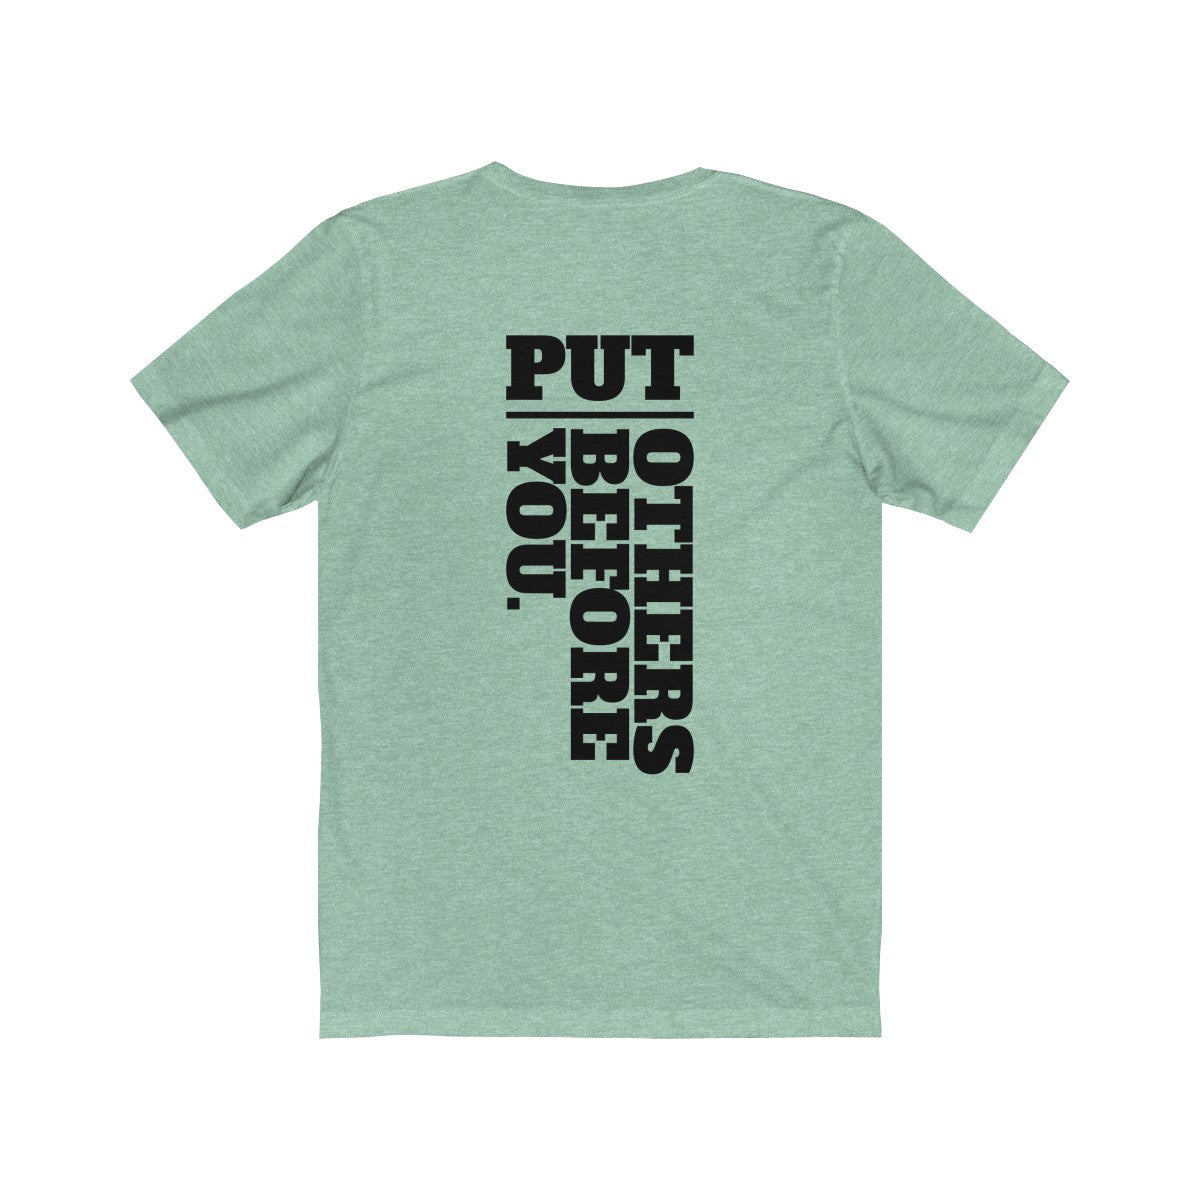 Put Others Before You Unisex Jersey Short Sleeve Tee - FRONT & BACK PRINT